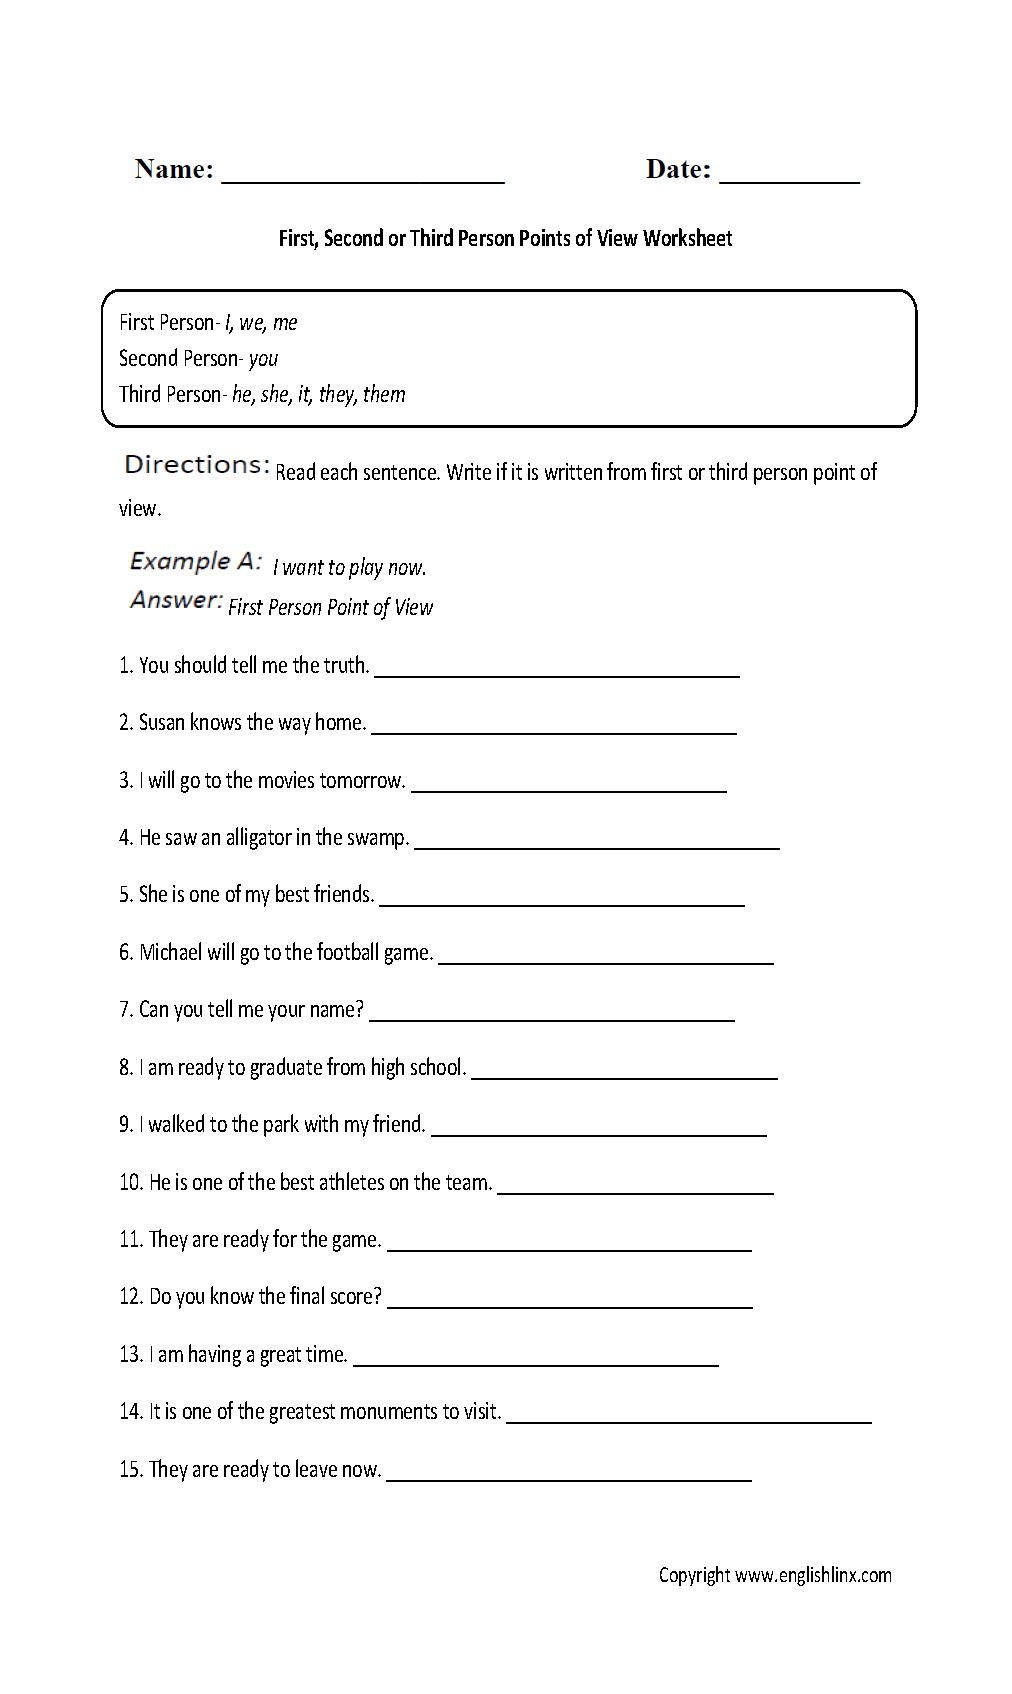 Weirdmailus  Nice Englishlinxcom  Point Of View Worksheets With Engaging Point Of View Worksheet With Delectable Field Trip Worksheet Also Th Grade Fractions Worksheets In Addition Tracing Alphabet Worksheets Free Printable And Simplifying Expressions Worksheet With Answers As Well As Homophone Worksheets Nd Grade Additionally Line Segments Worksheets From Englishlinxcom With Weirdmailus  Engaging Englishlinxcom  Point Of View Worksheets With Delectable Point Of View Worksheet And Nice Field Trip Worksheet Also Th Grade Fractions Worksheets In Addition Tracing Alphabet Worksheets Free Printable From Englishlinxcom